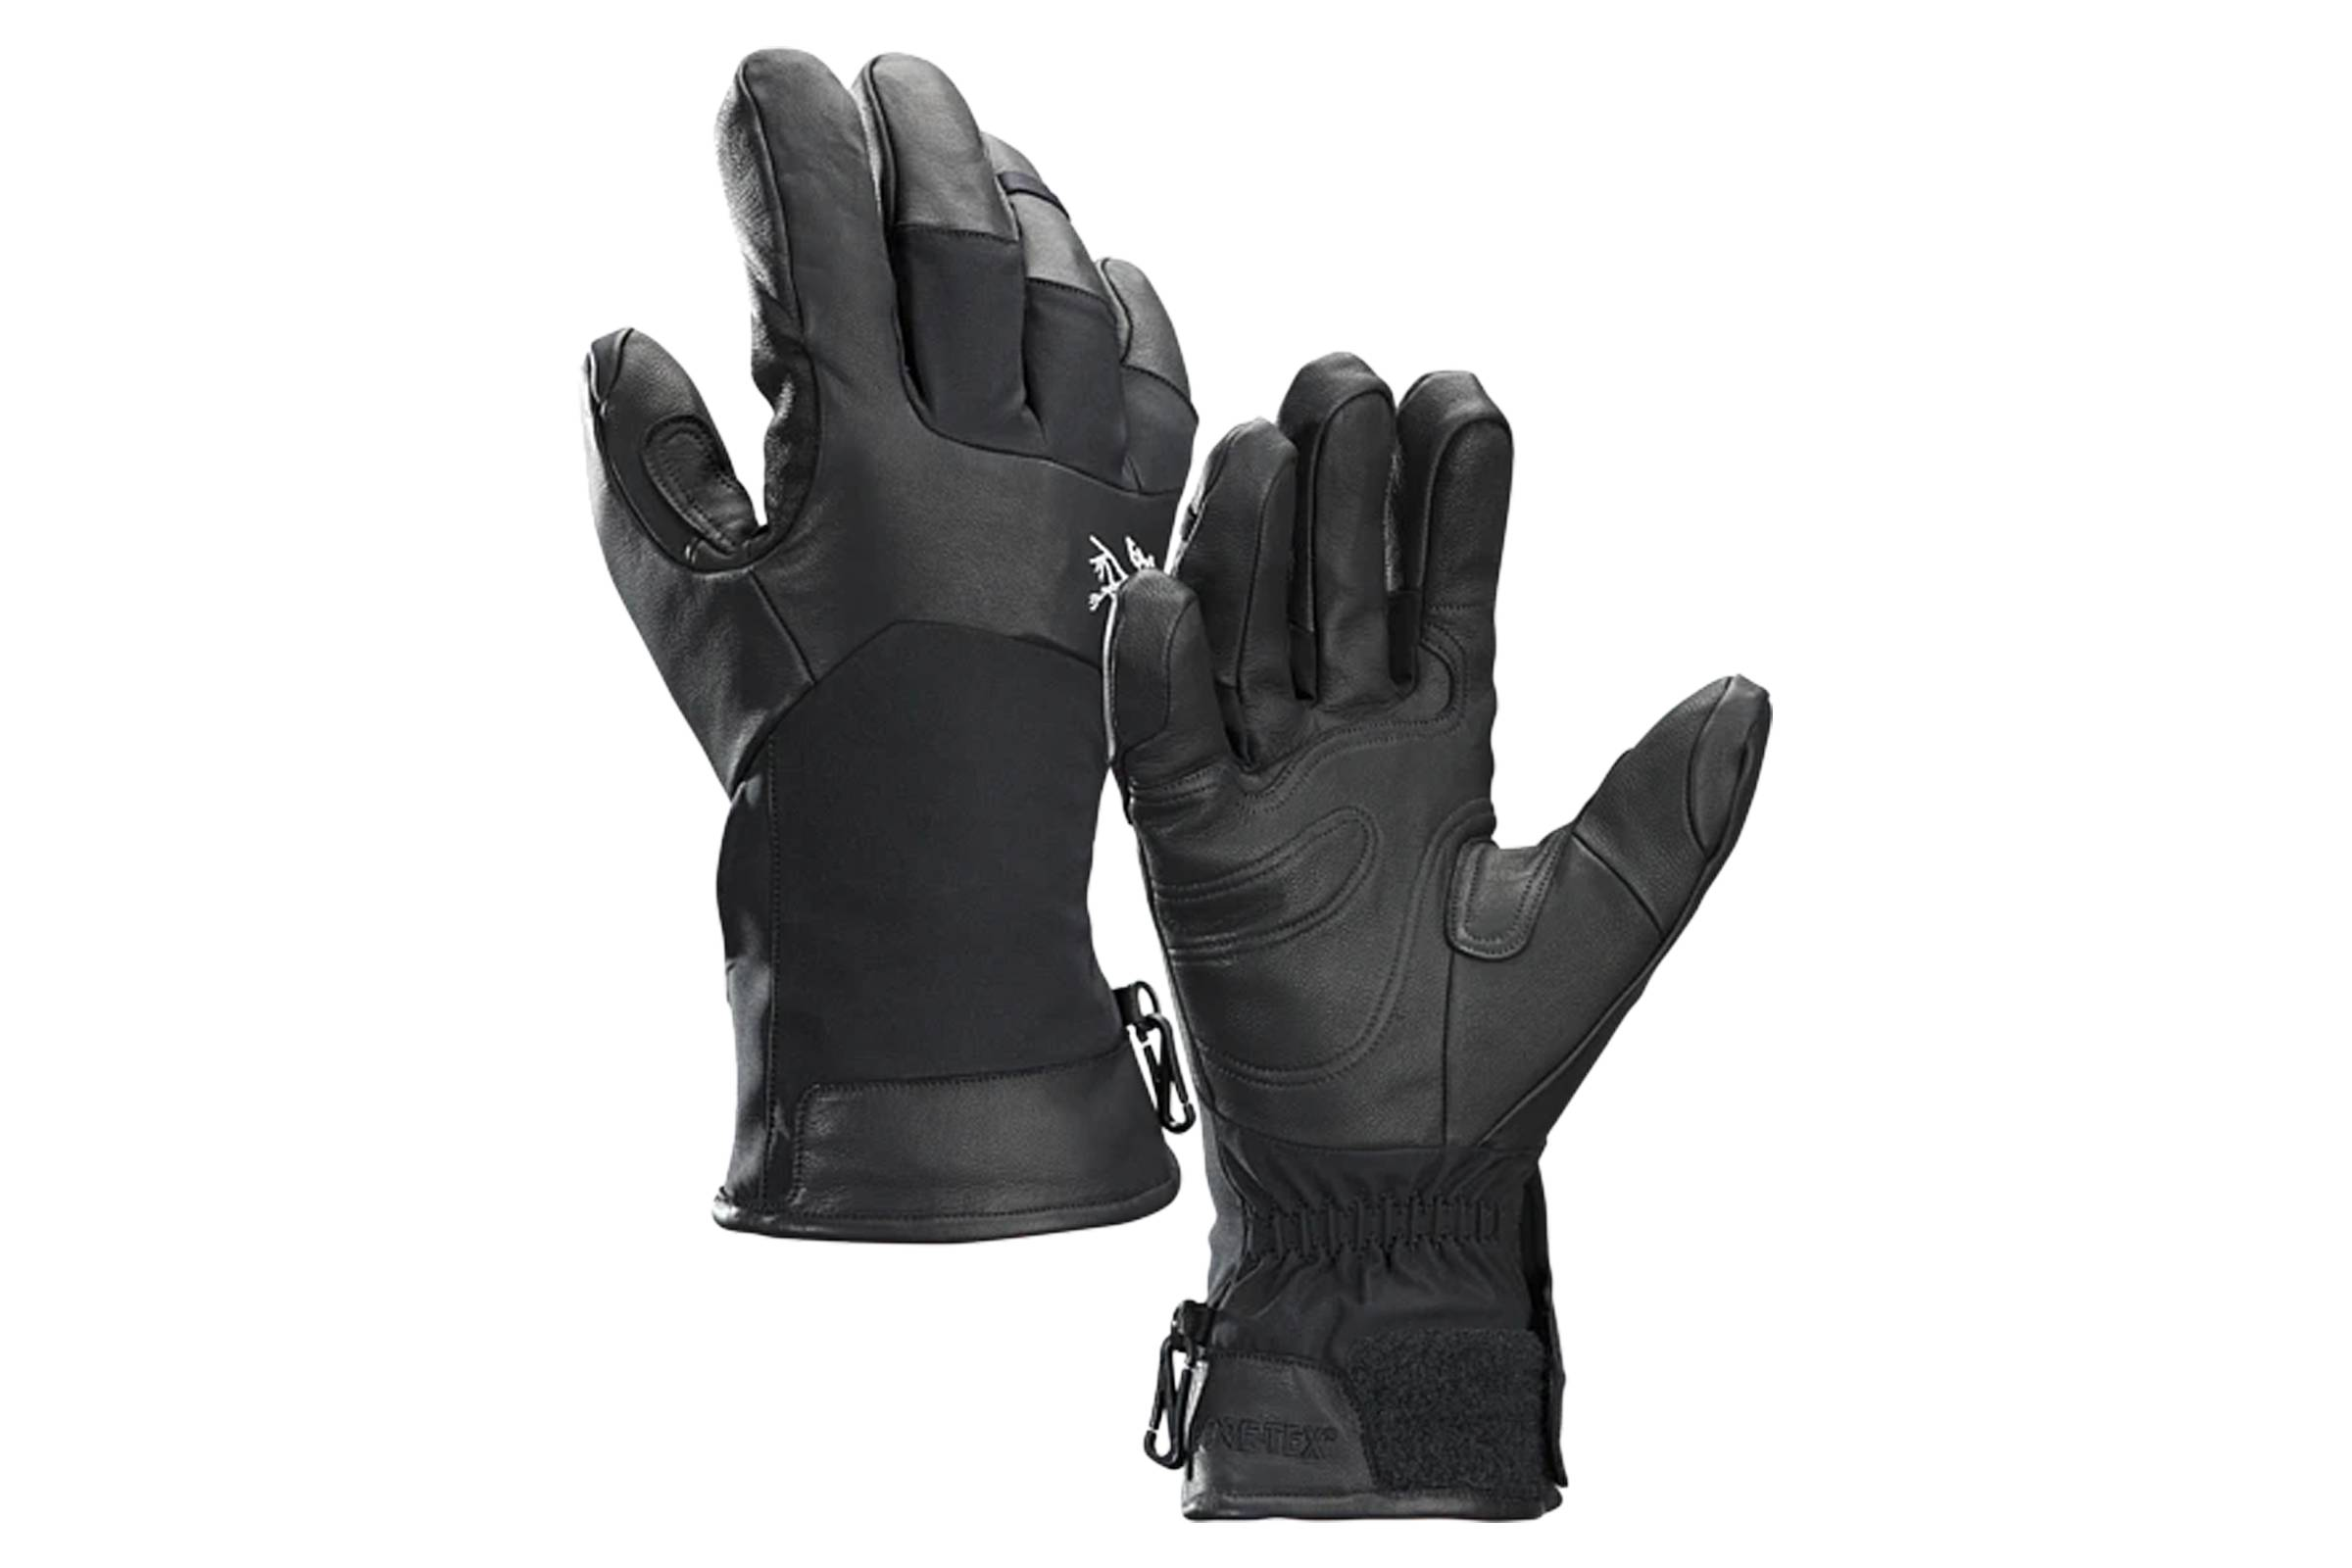 Best Skiing and Snowboarding Gloves